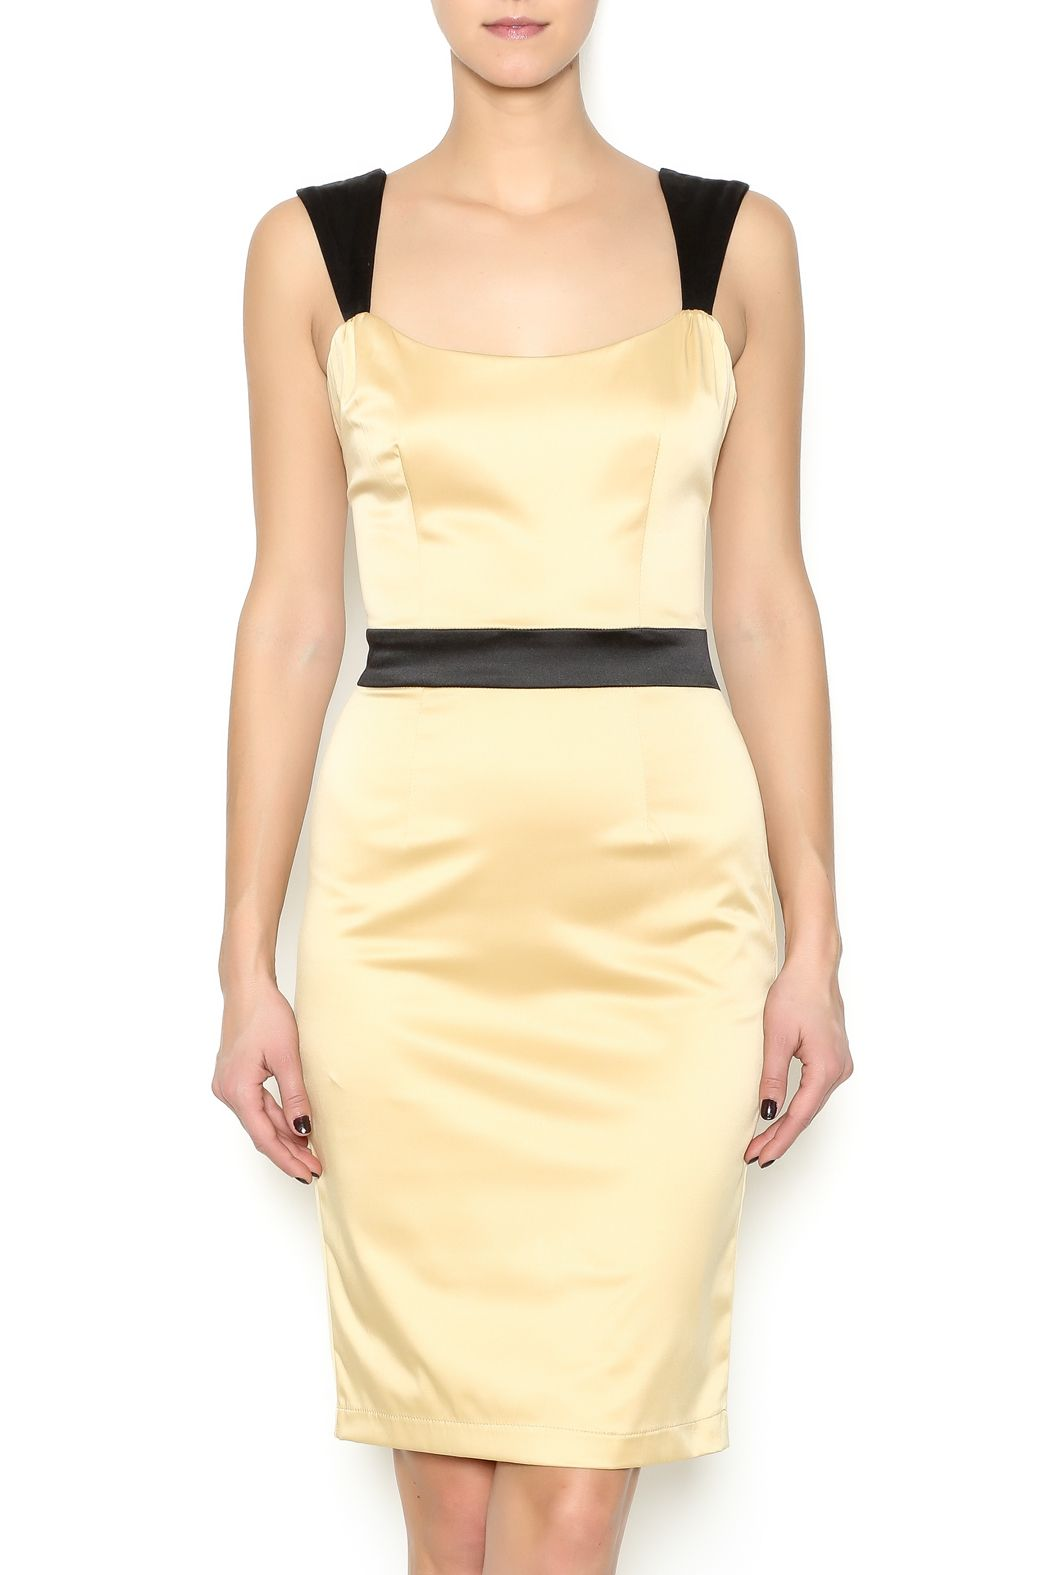 Champagne Satin Dress With A Ed Black Waist And Shoulder Straps Features An Exposed Zipper